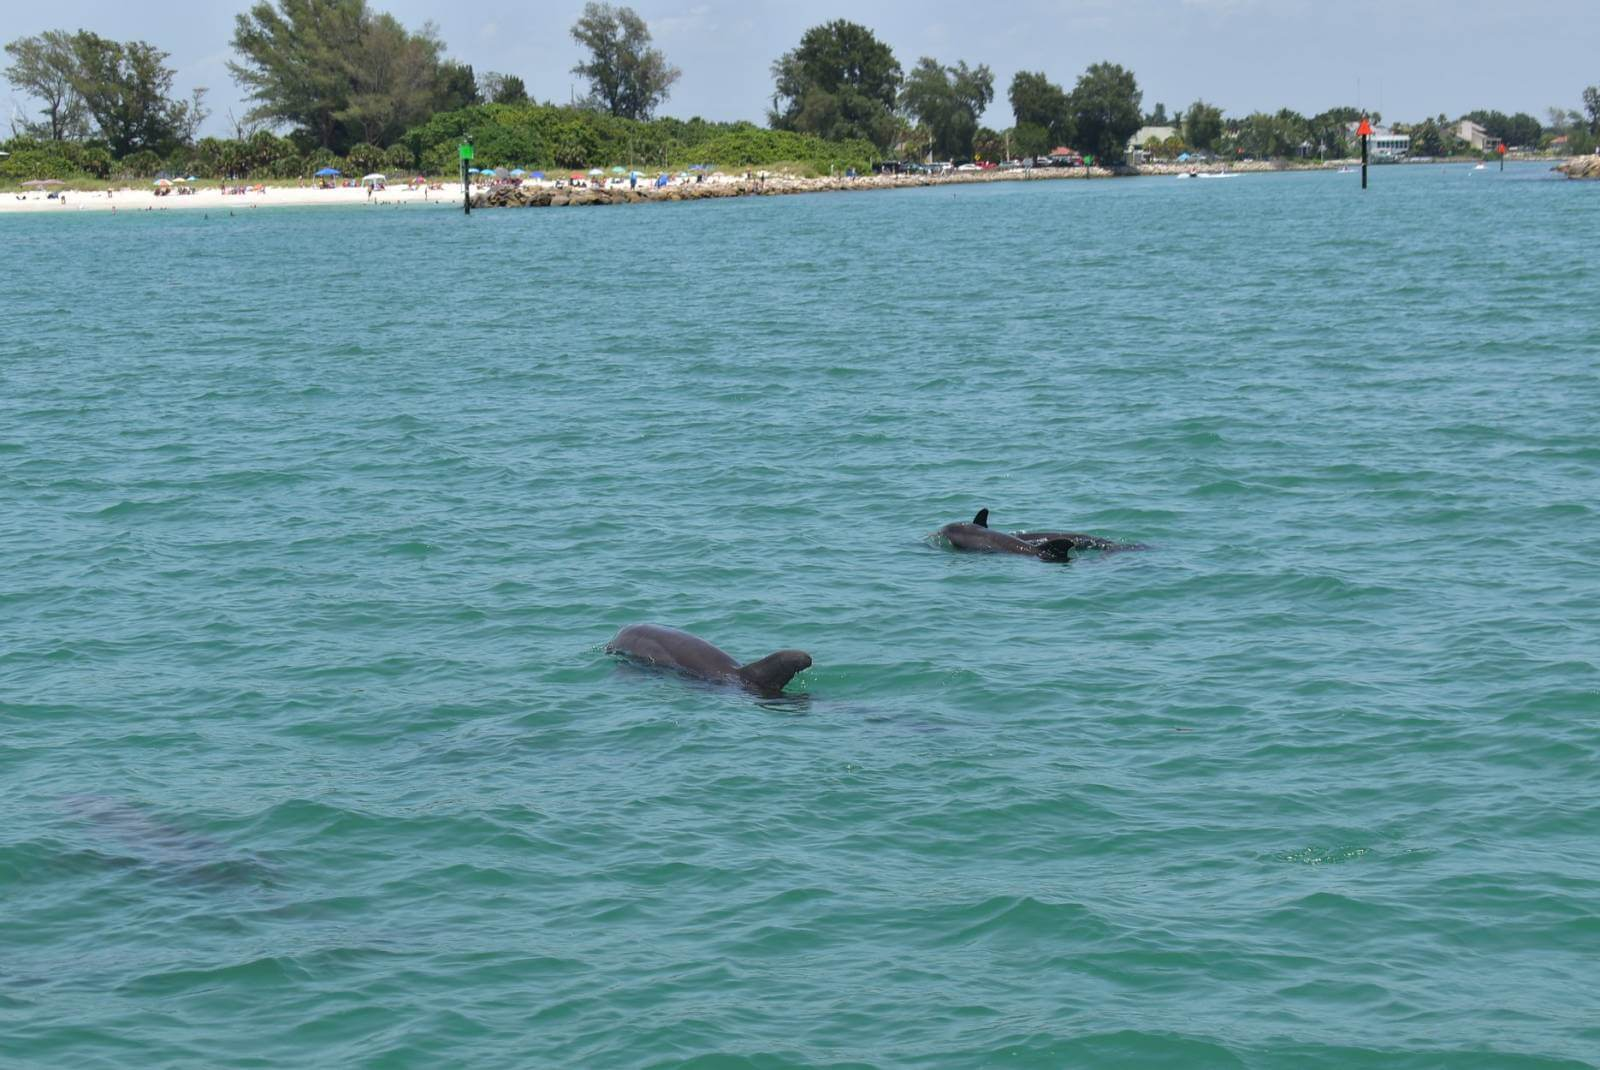 Dolphins swim in the Gulf of Mexico near Sail Venice sailing boat in Venice, Florida. Must Do Visitor Guides.